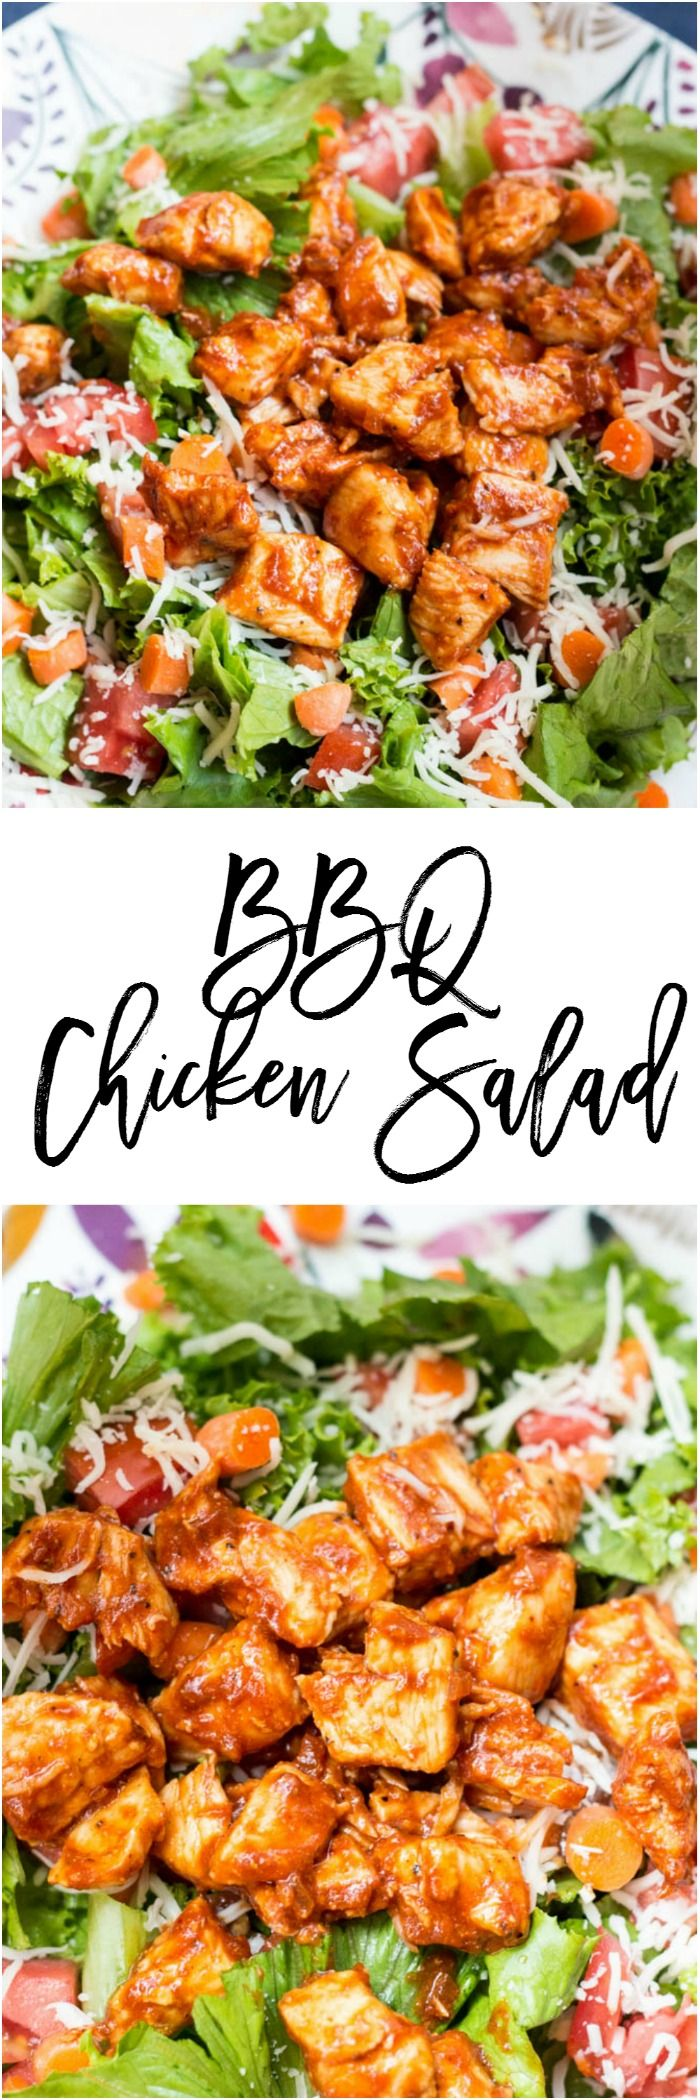 BBQ Chicken Salad - This recipe can be on your table in 15 minutes and won't taste like it.  It's only 7 SmartPoints on Weight Watchers and is filling enough to last you all afternoon.